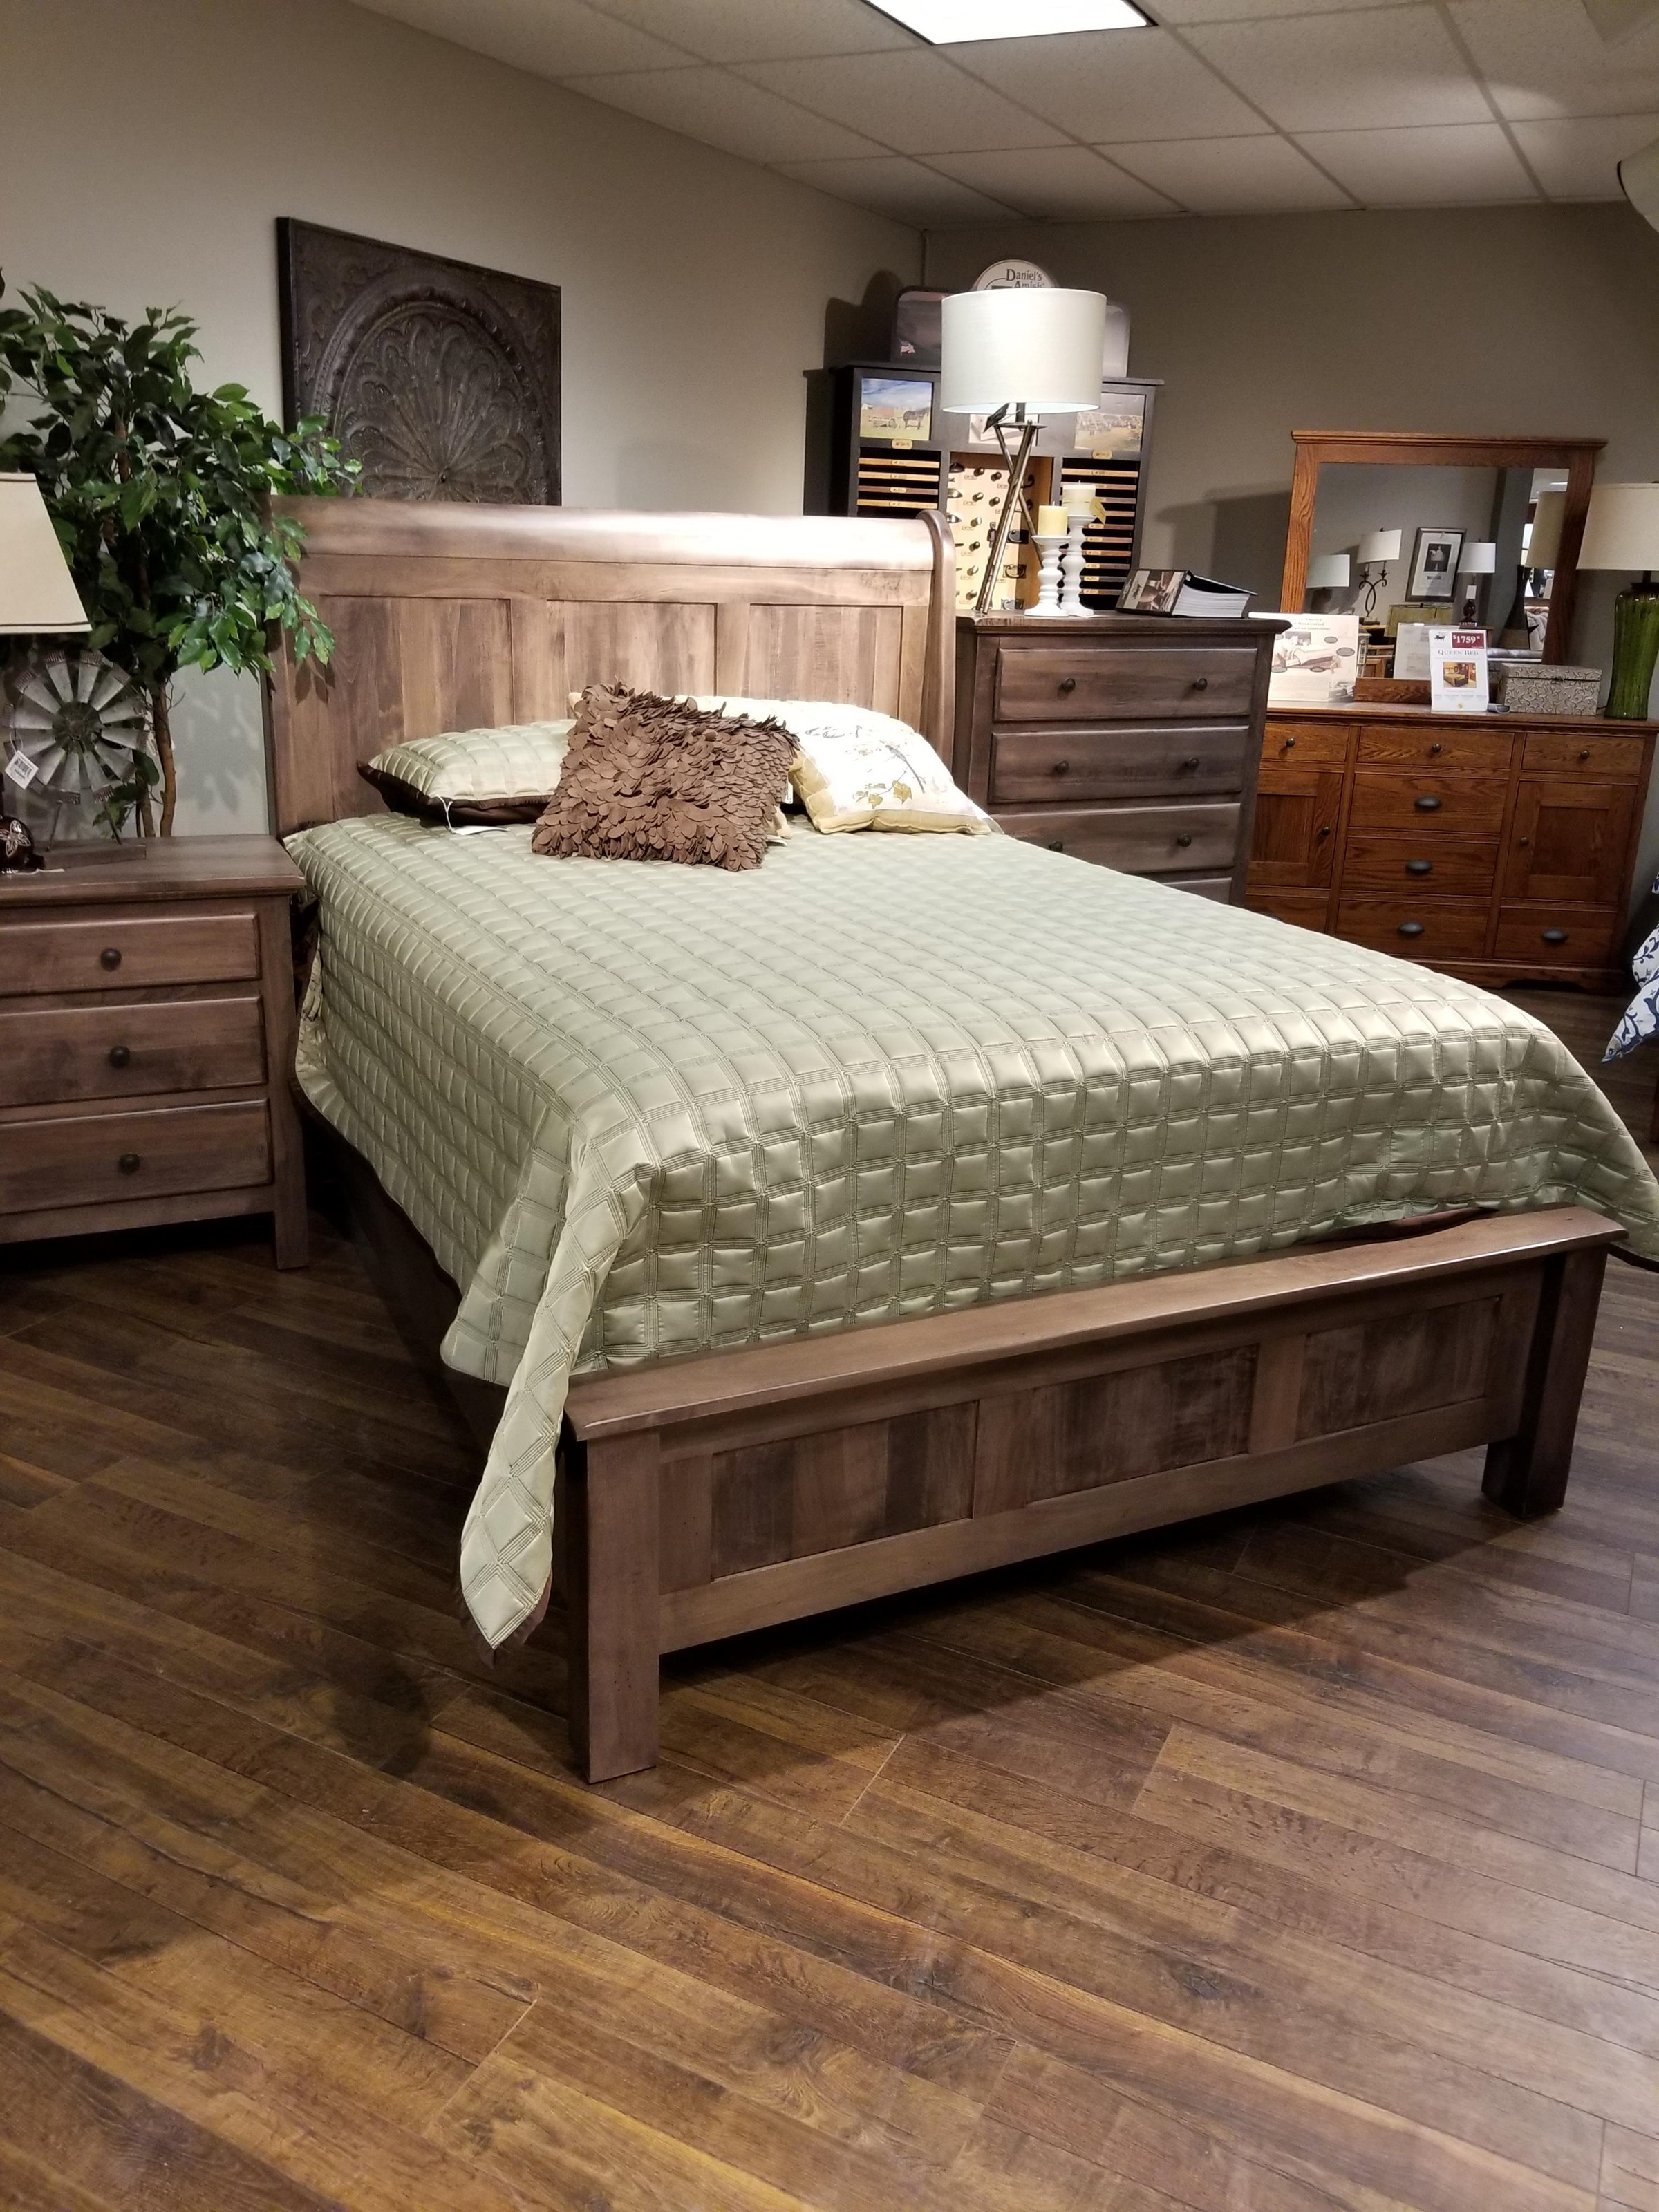 Lewiston Queen Sleigh Bed by Daniel's Amish at VanDrie Home Furnishings